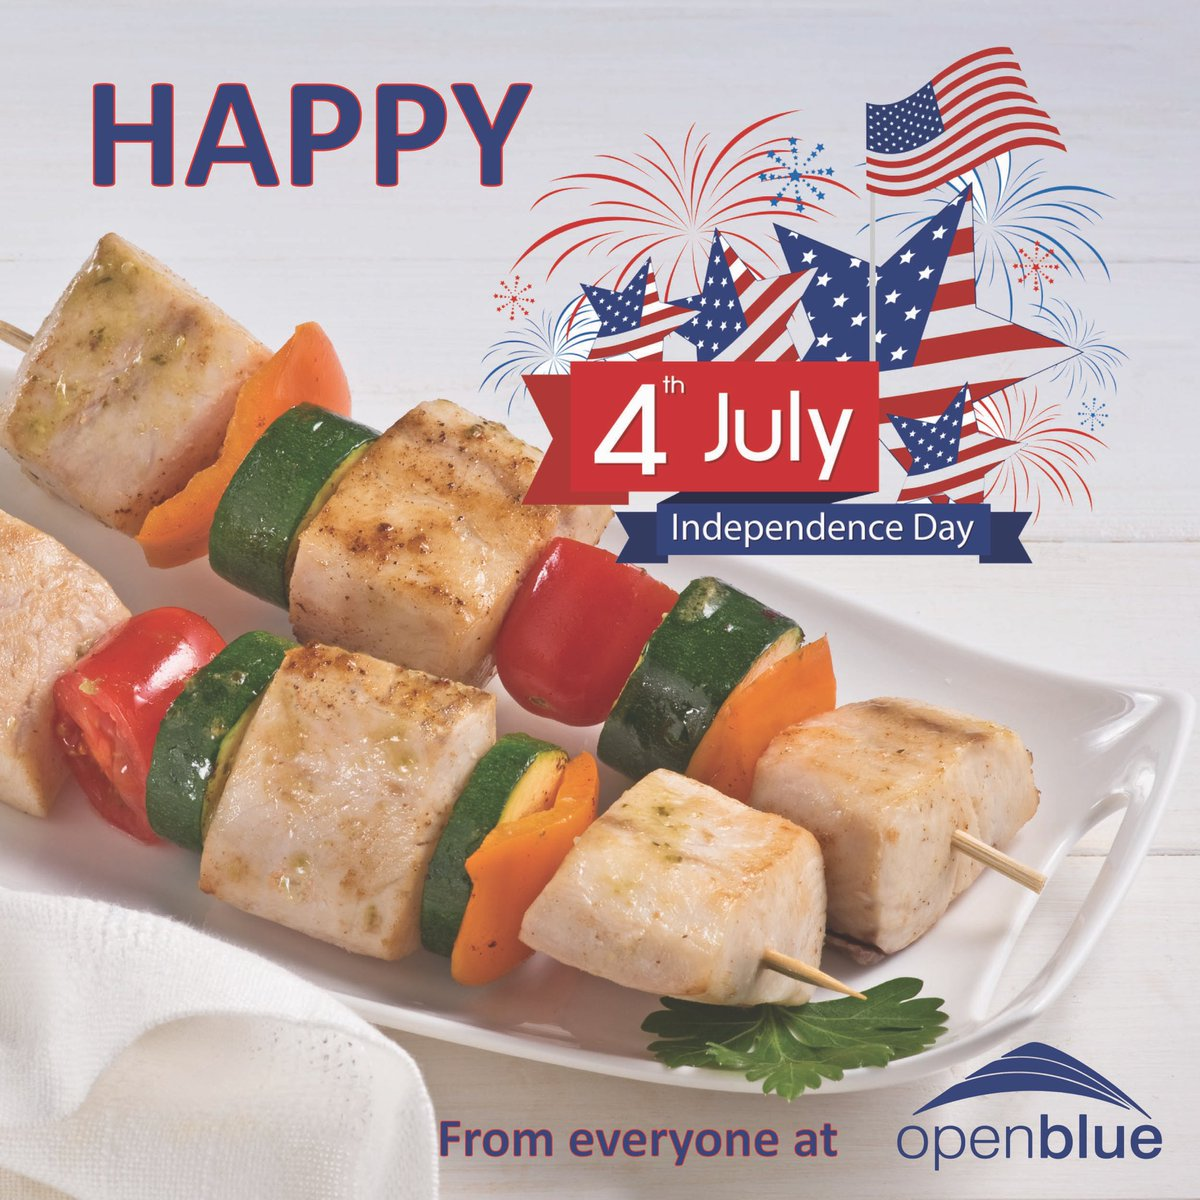 Easy healthy eating for #MemorialDay #independenceday2020 #FourthofJuly2020  🎉 Boneless Skinless #OpenBlue #Cobia on bamboo skewers with zucchini, red & orange pepper slices Brushed with olive oil, lemon juice, salt & pepper Grilled 🔥 #CobiaSkewers 🙌 sales@openblue.com